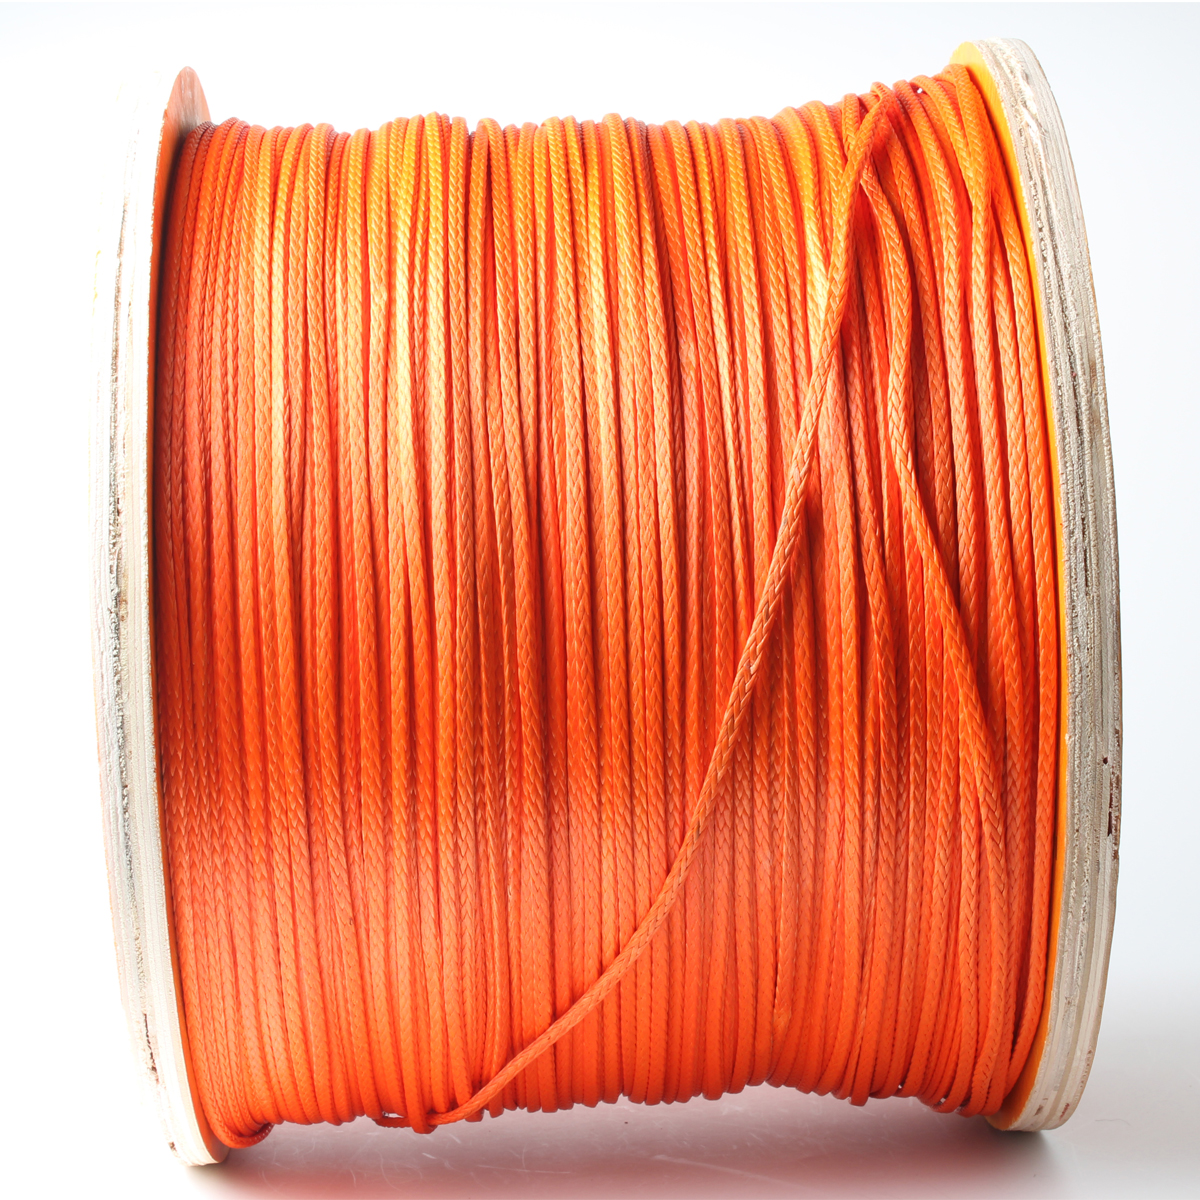 3mm UHMWPE hollow braided paragliding line